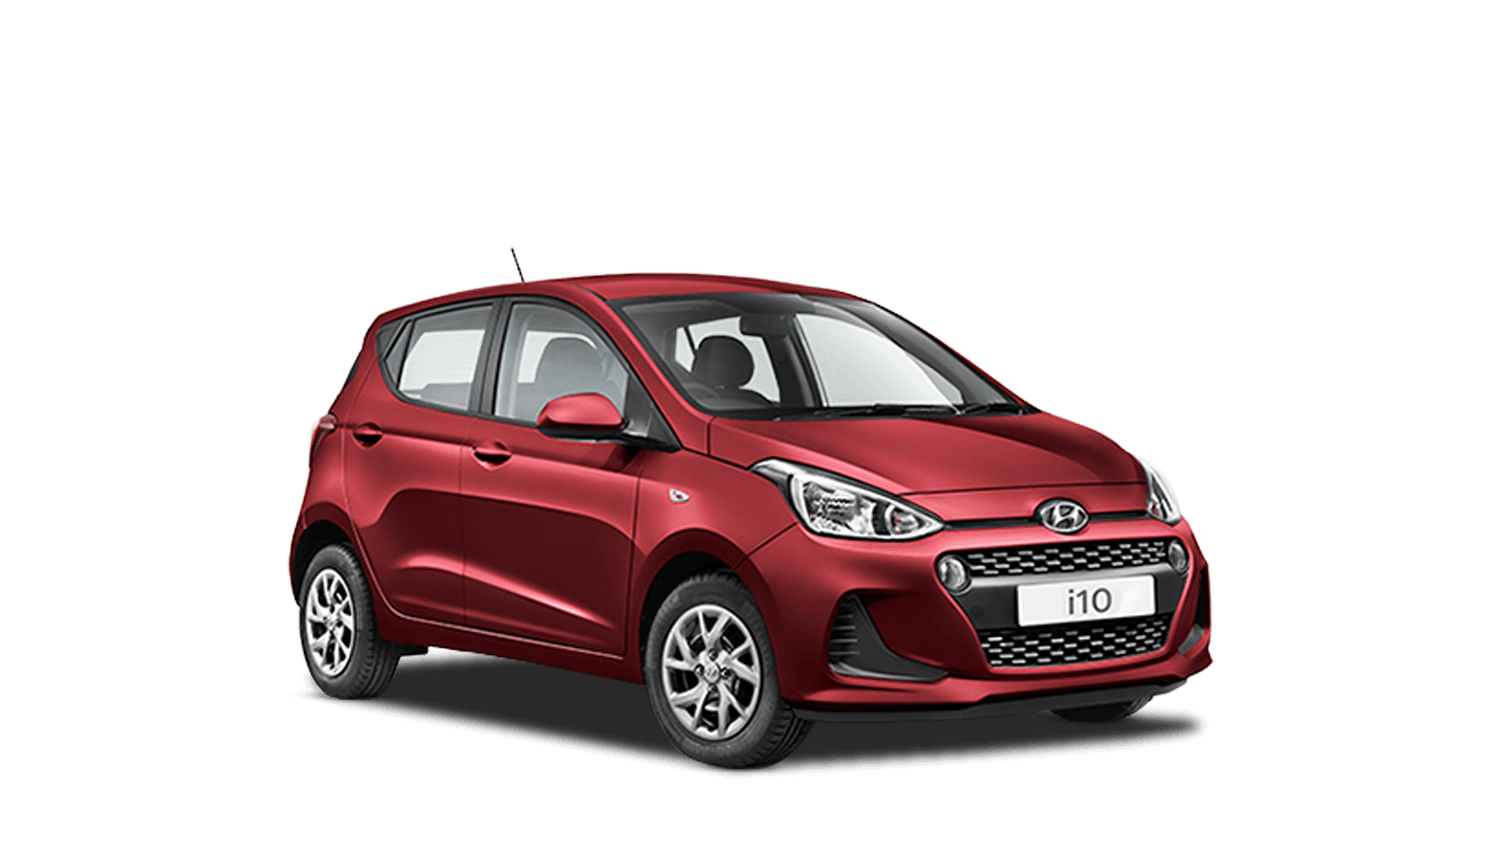 Passion Red Hyundai i10